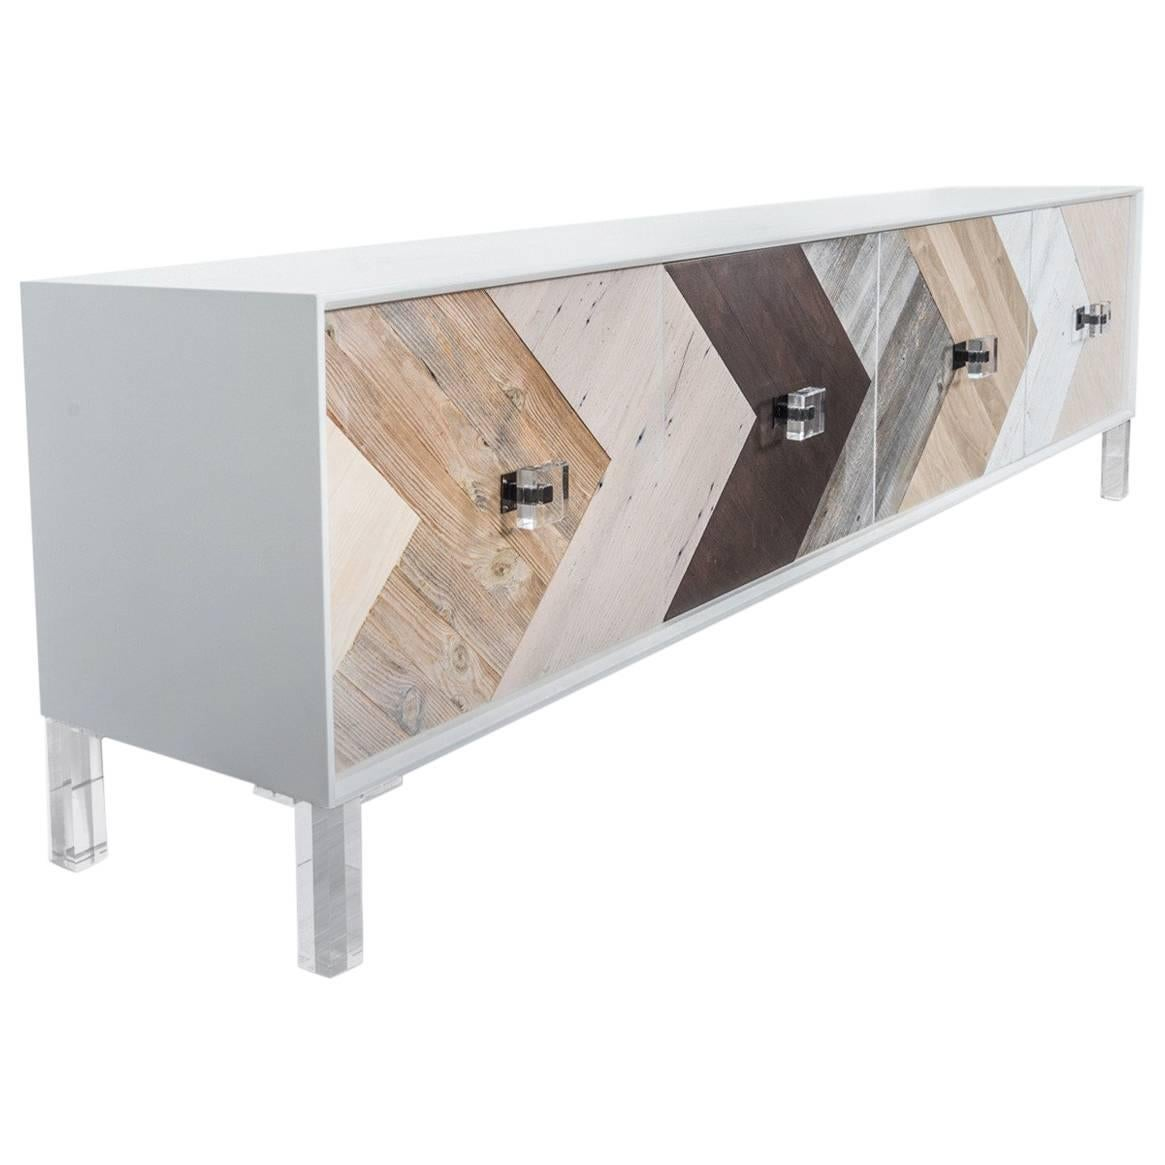 Mid-Century Modern Credenza with Lucite Legs & Walnut Hickory Oak Recycled Wood